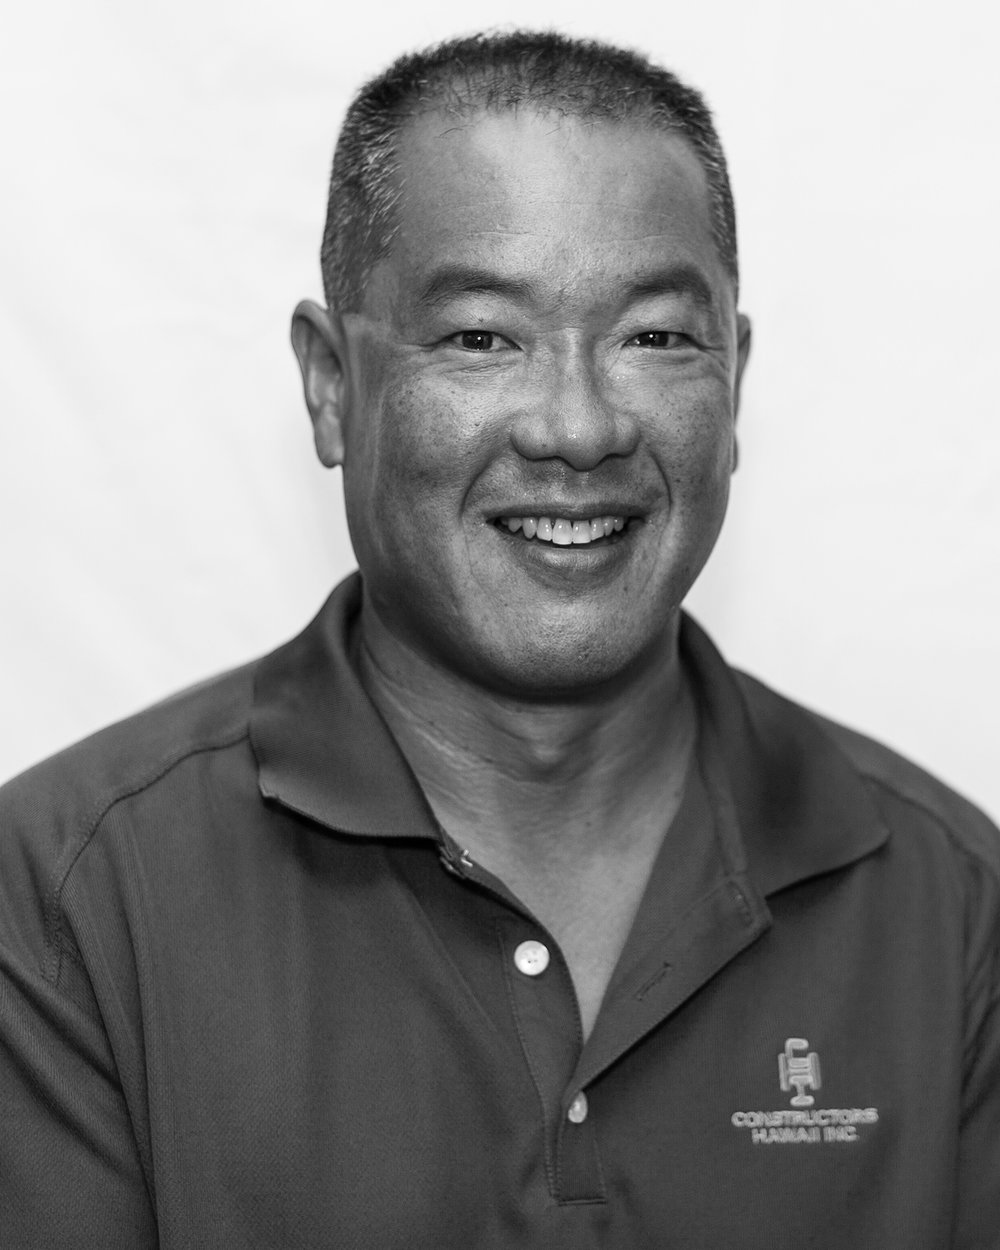 Fred Fujiwara - Big Island    Start of Employment:  2008   Notable Projects:    Hilo Federal Building – Renovation of Elevators 1, 2, & 3, Home Street Bank, Kona / Hilo Central pacific Bank, Kona / Hilo Bank of Hawaii, Kona Kaiser Permanente Clinic   Hobbies:  Fishing and cooking